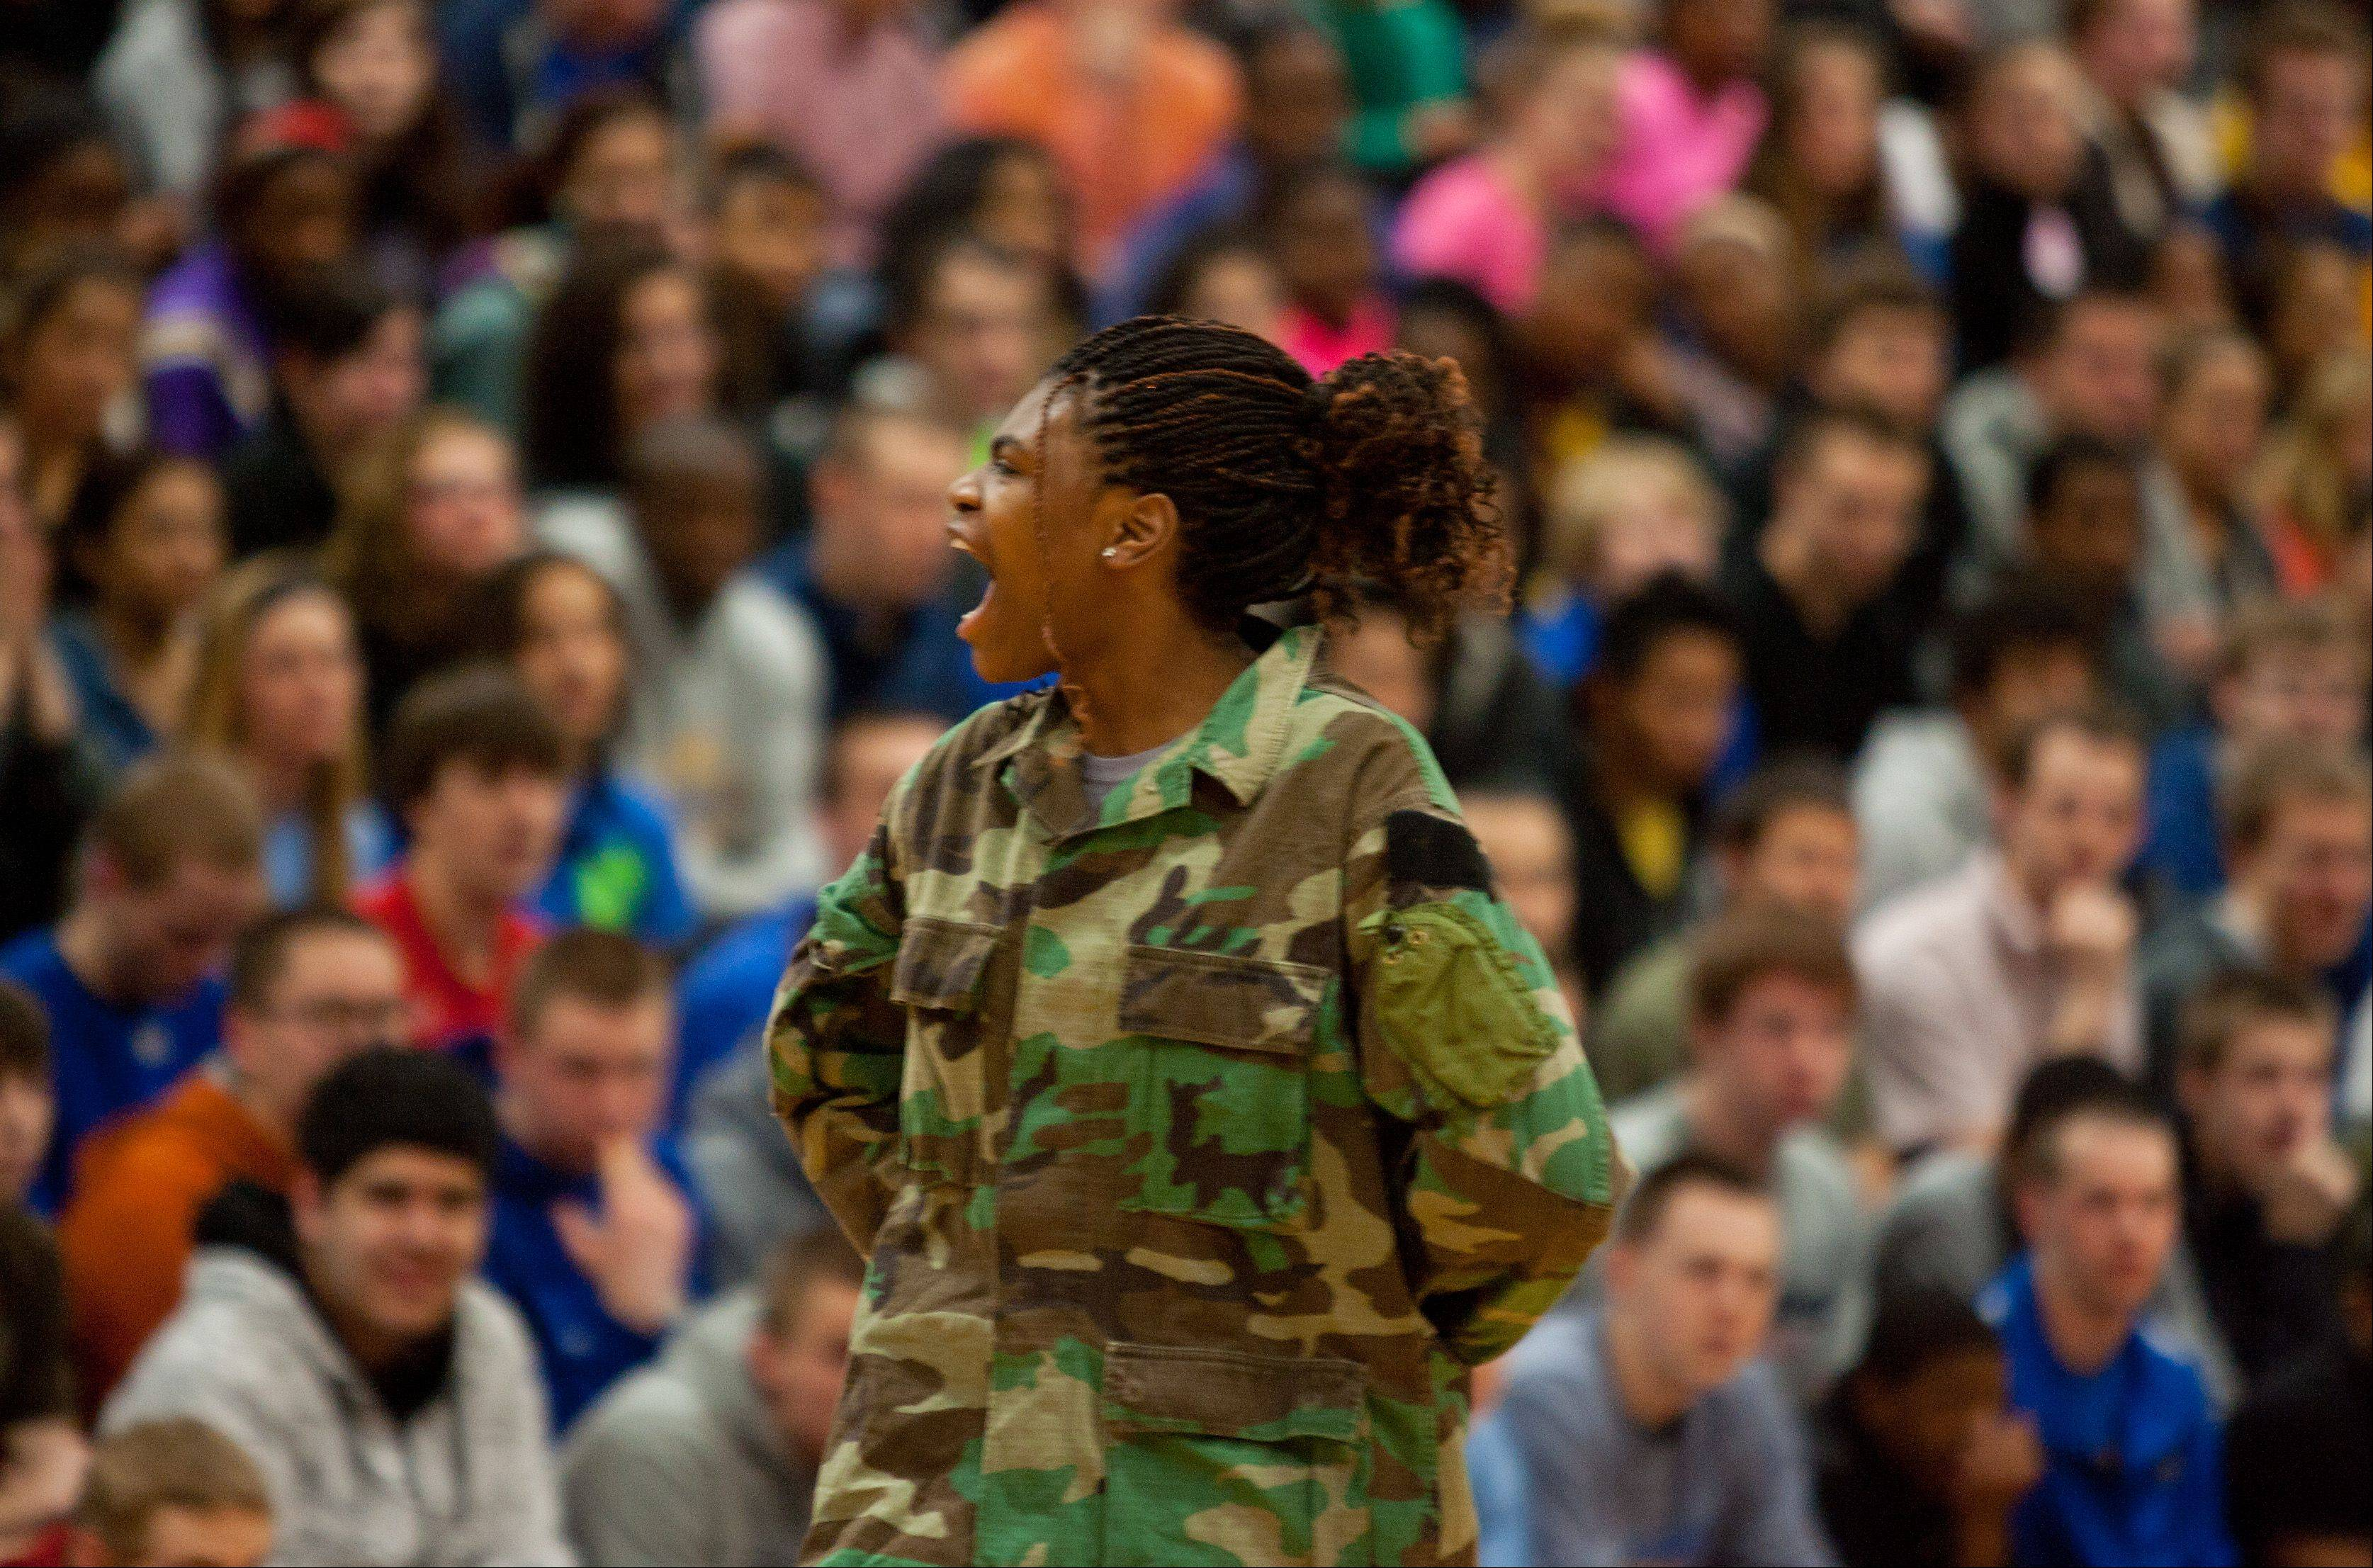 Janiece Robertson commands the Wheaton North Step team, as it celebrates its weekend state championship win, during a school assembly.